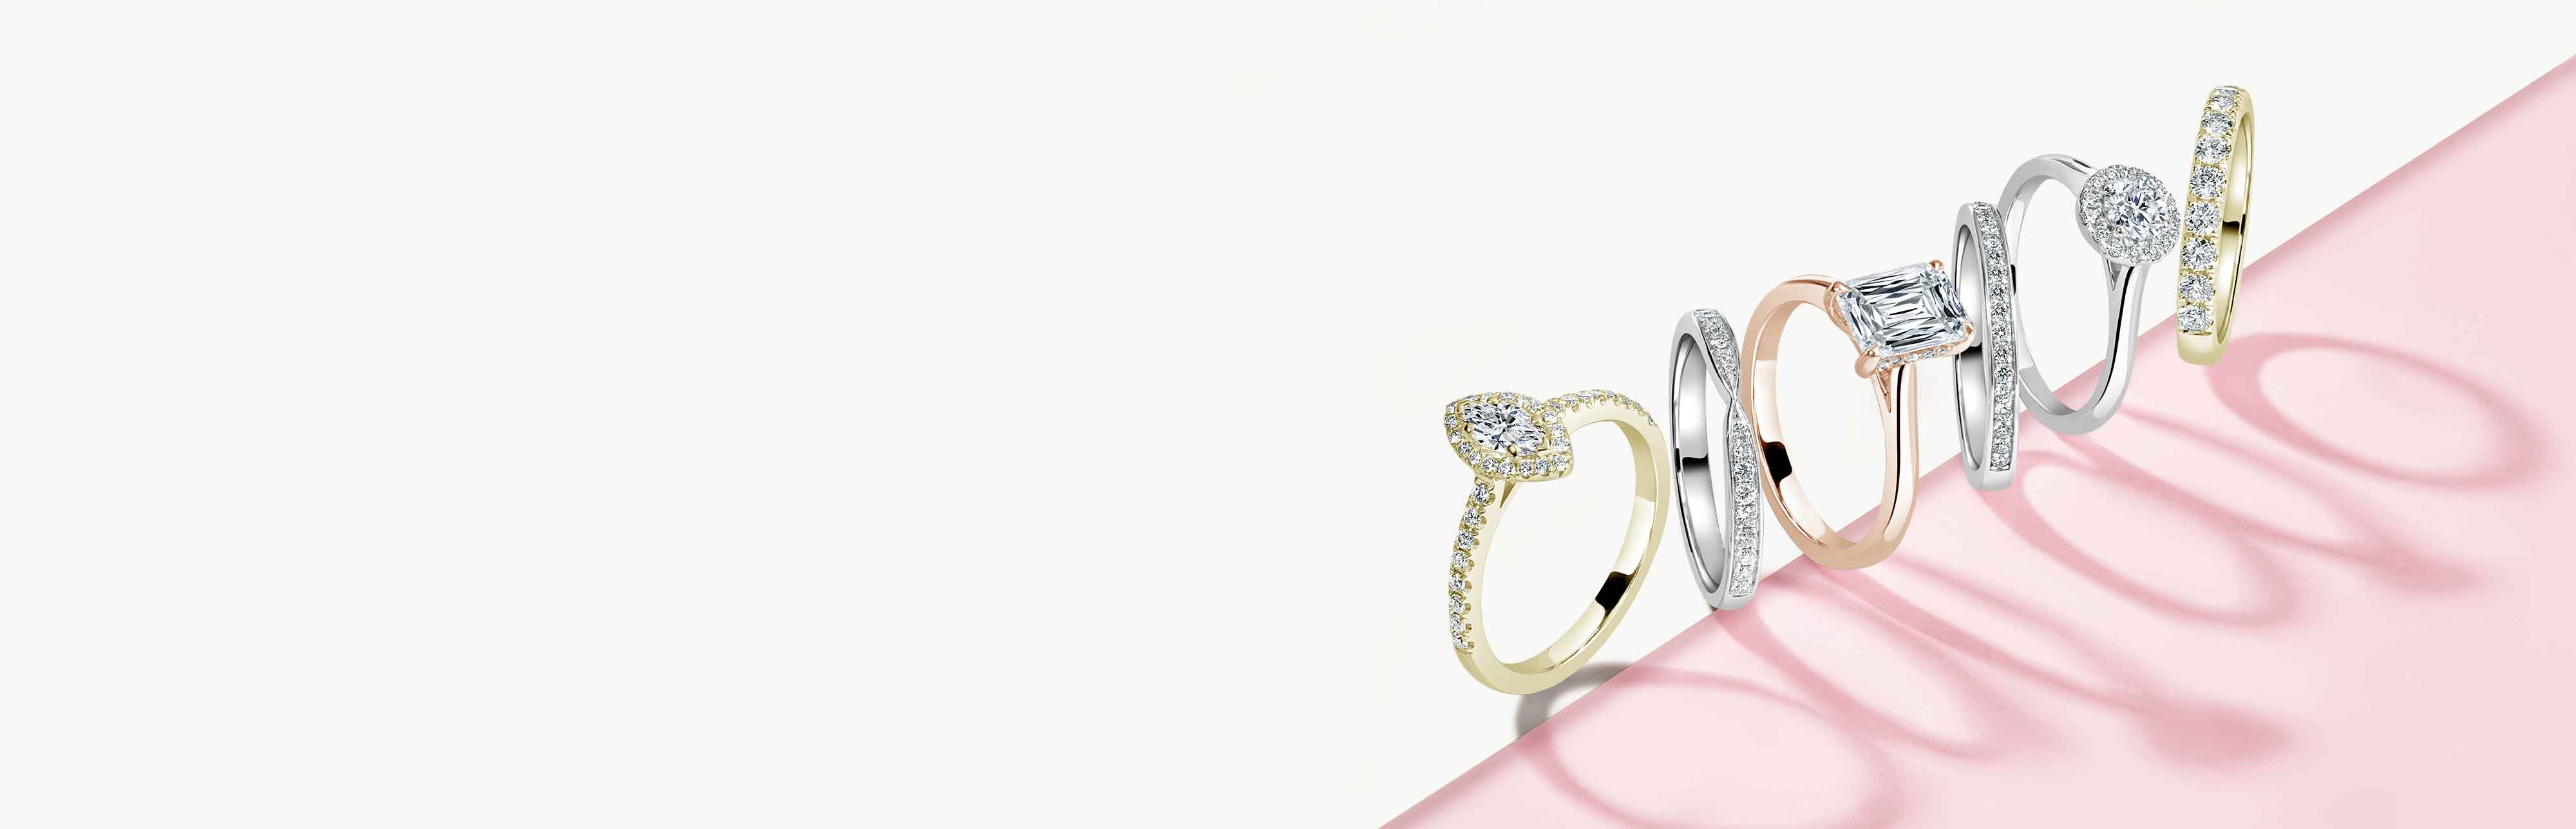 Radiant Cut Three Stone Engagement Rings - Steven Stone